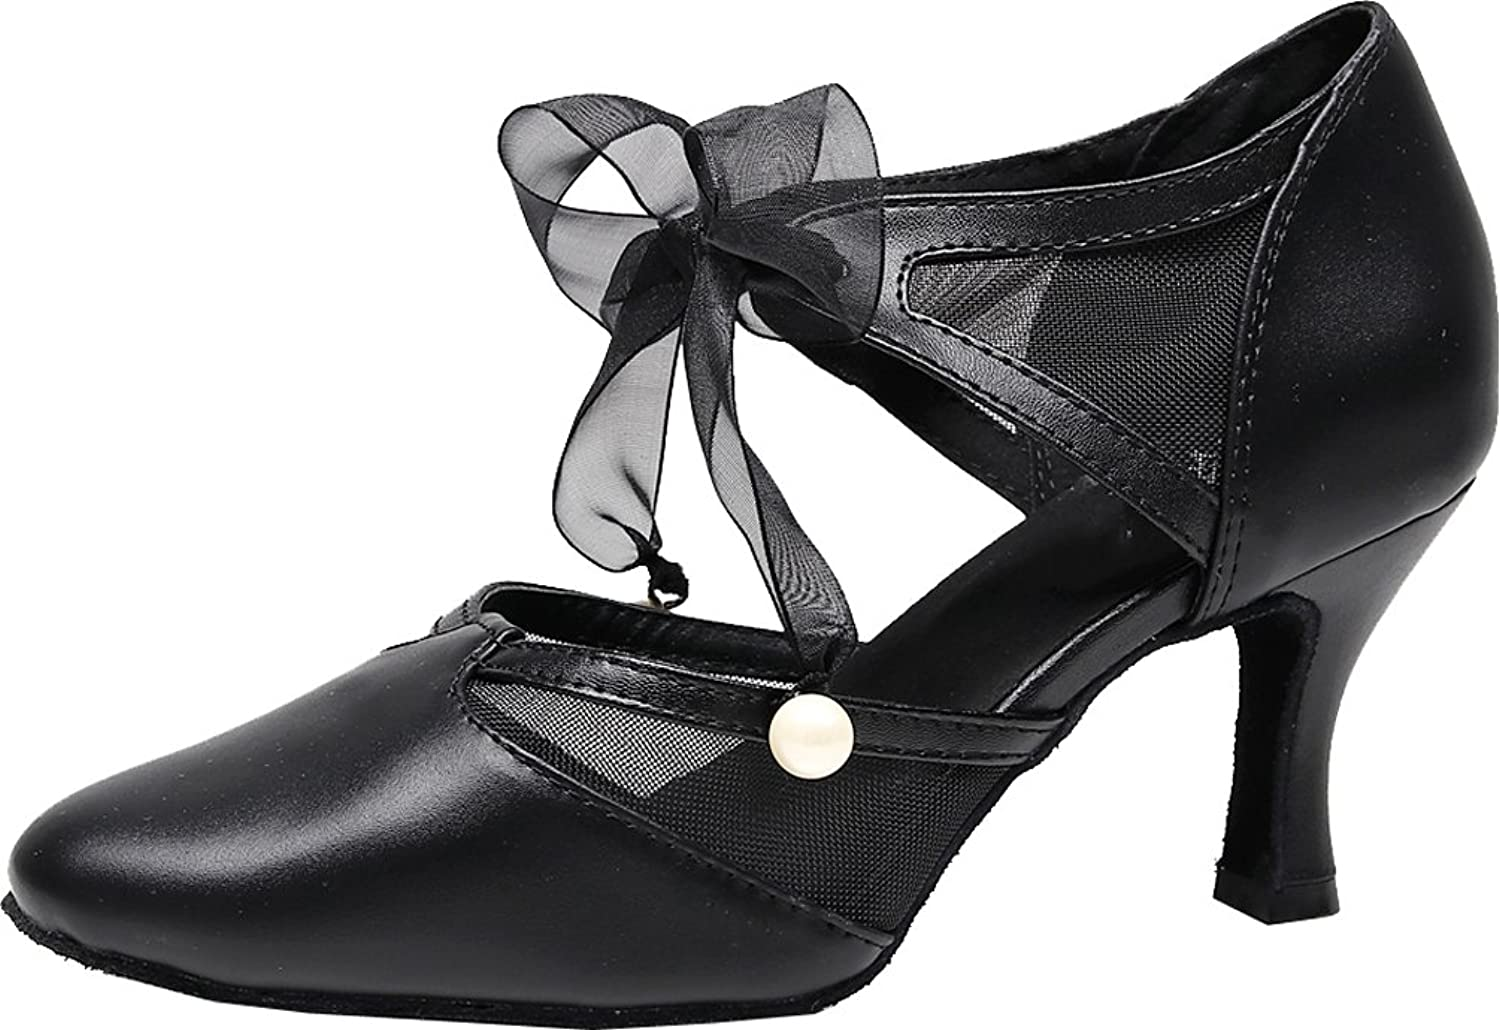 ABBY Products 7131 Latin Dance shoes for Women Tango Ballroom Ankle Straps Pointed Toe